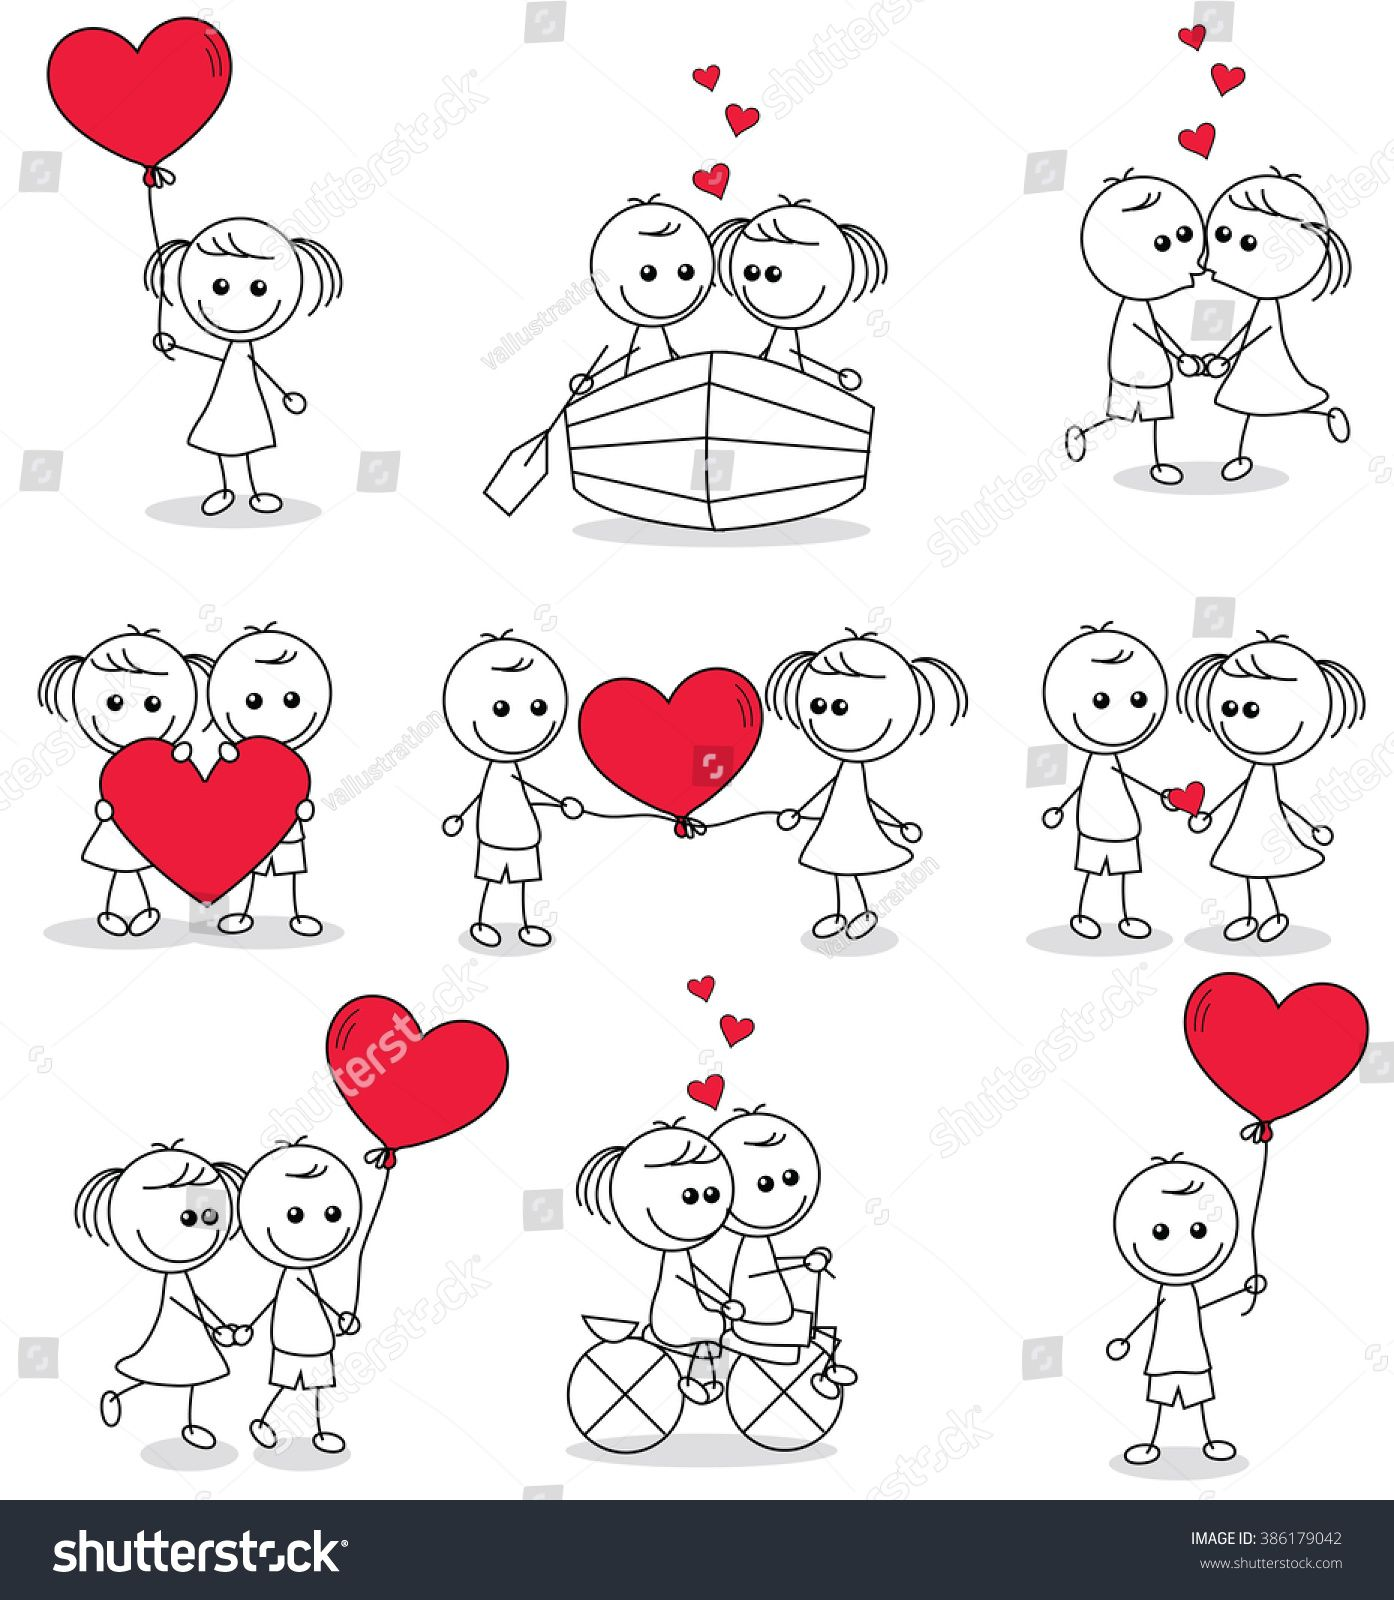 Collection Set Of Cute Couple Doodle With Hearts Zia Claudia